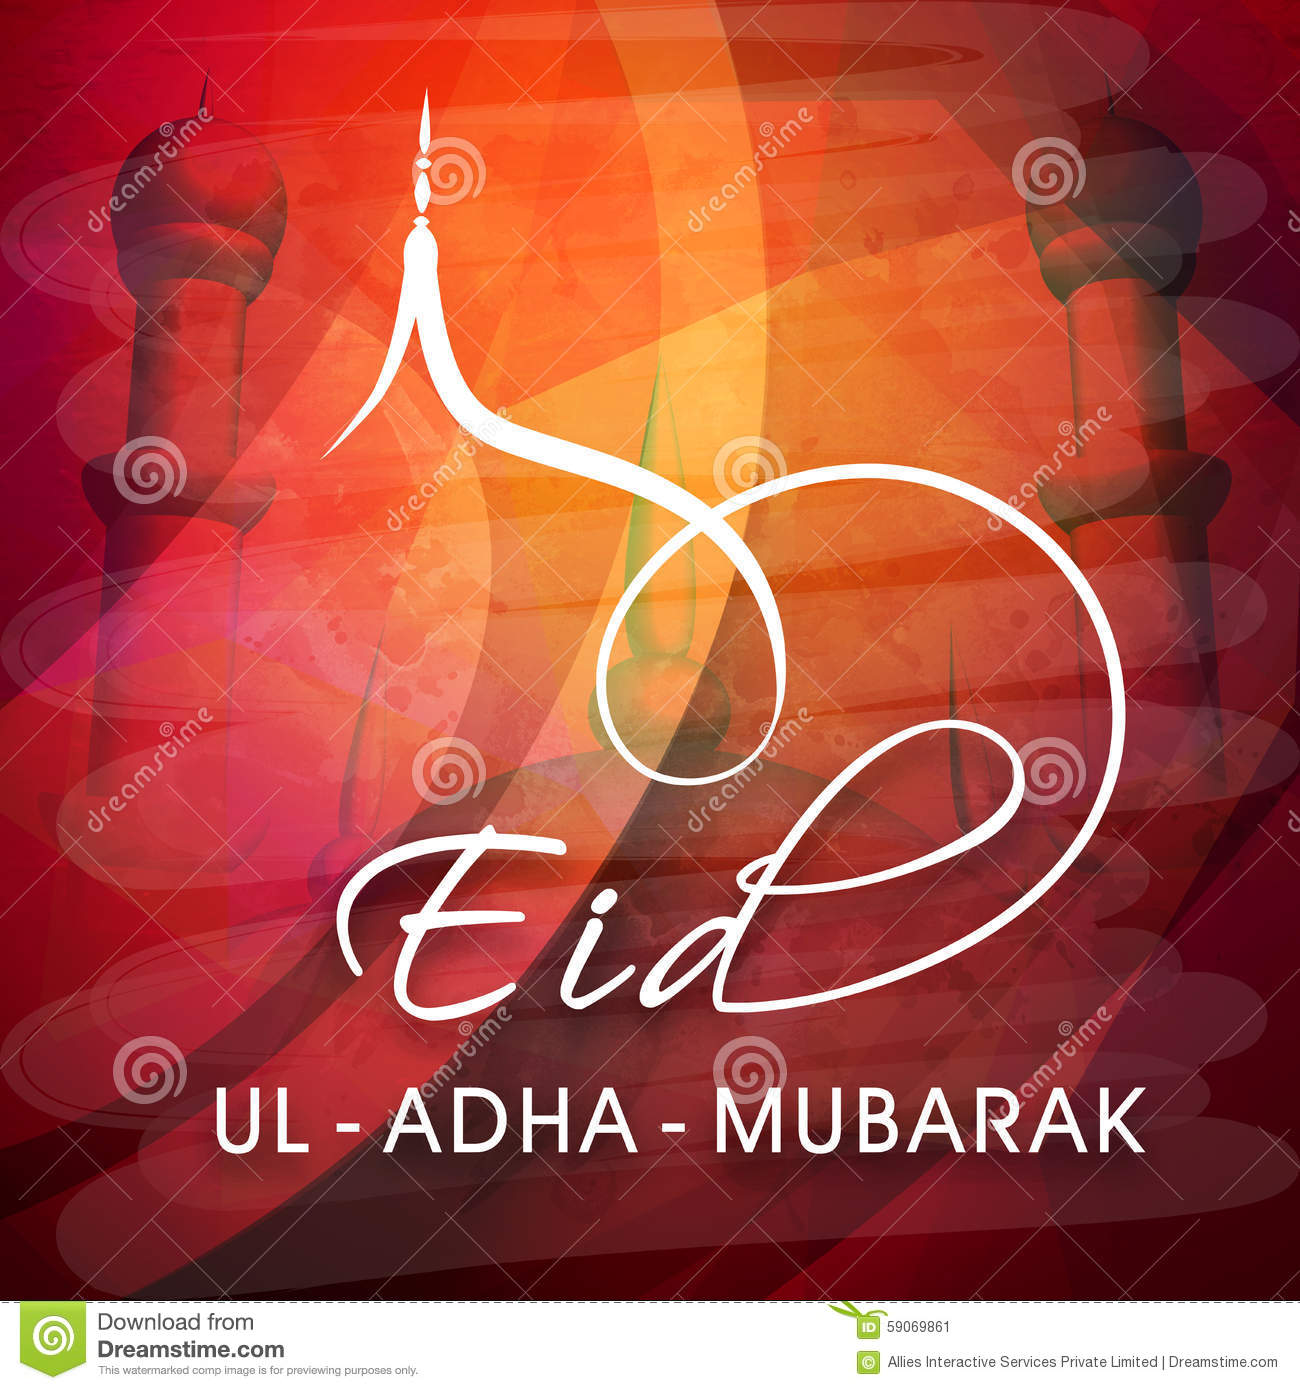 Greeting card for eid ul adha celebration stock illustration greeting card for eid ul adha celebration stock illustration illustration of islamic allah 59069861 m4hsunfo